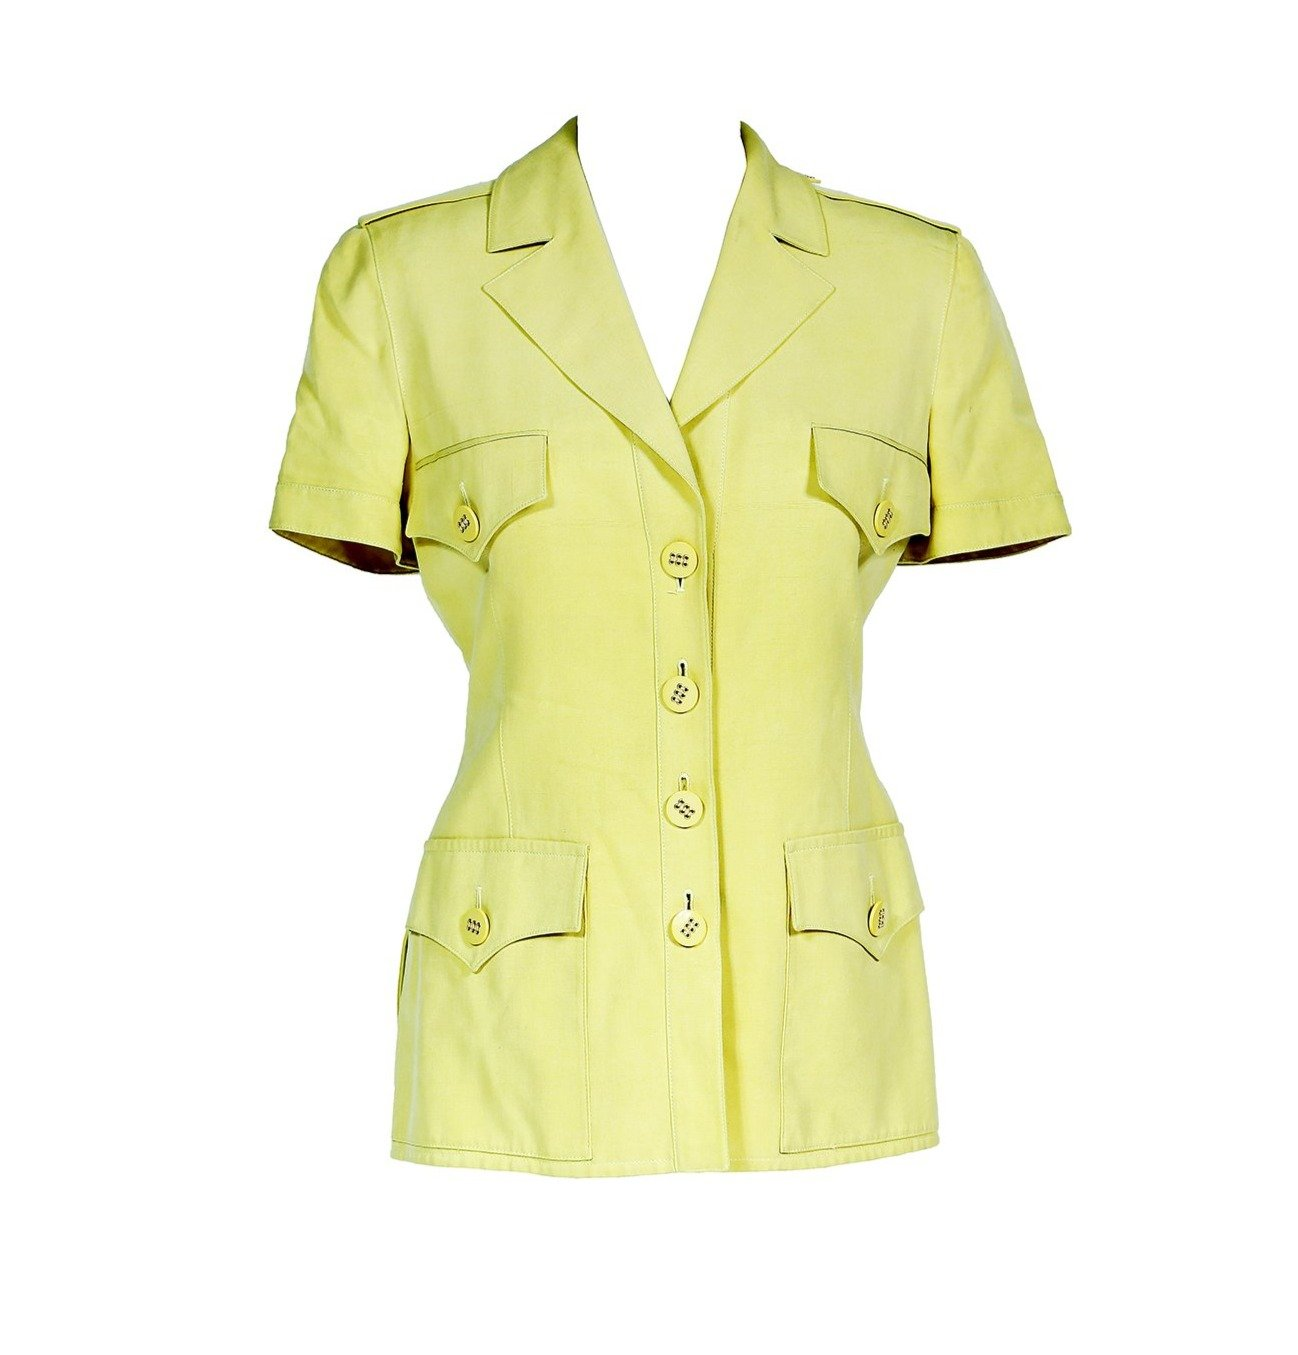 Valentino Vintage Safari 100% Silk Jacket in Yellow Fits M